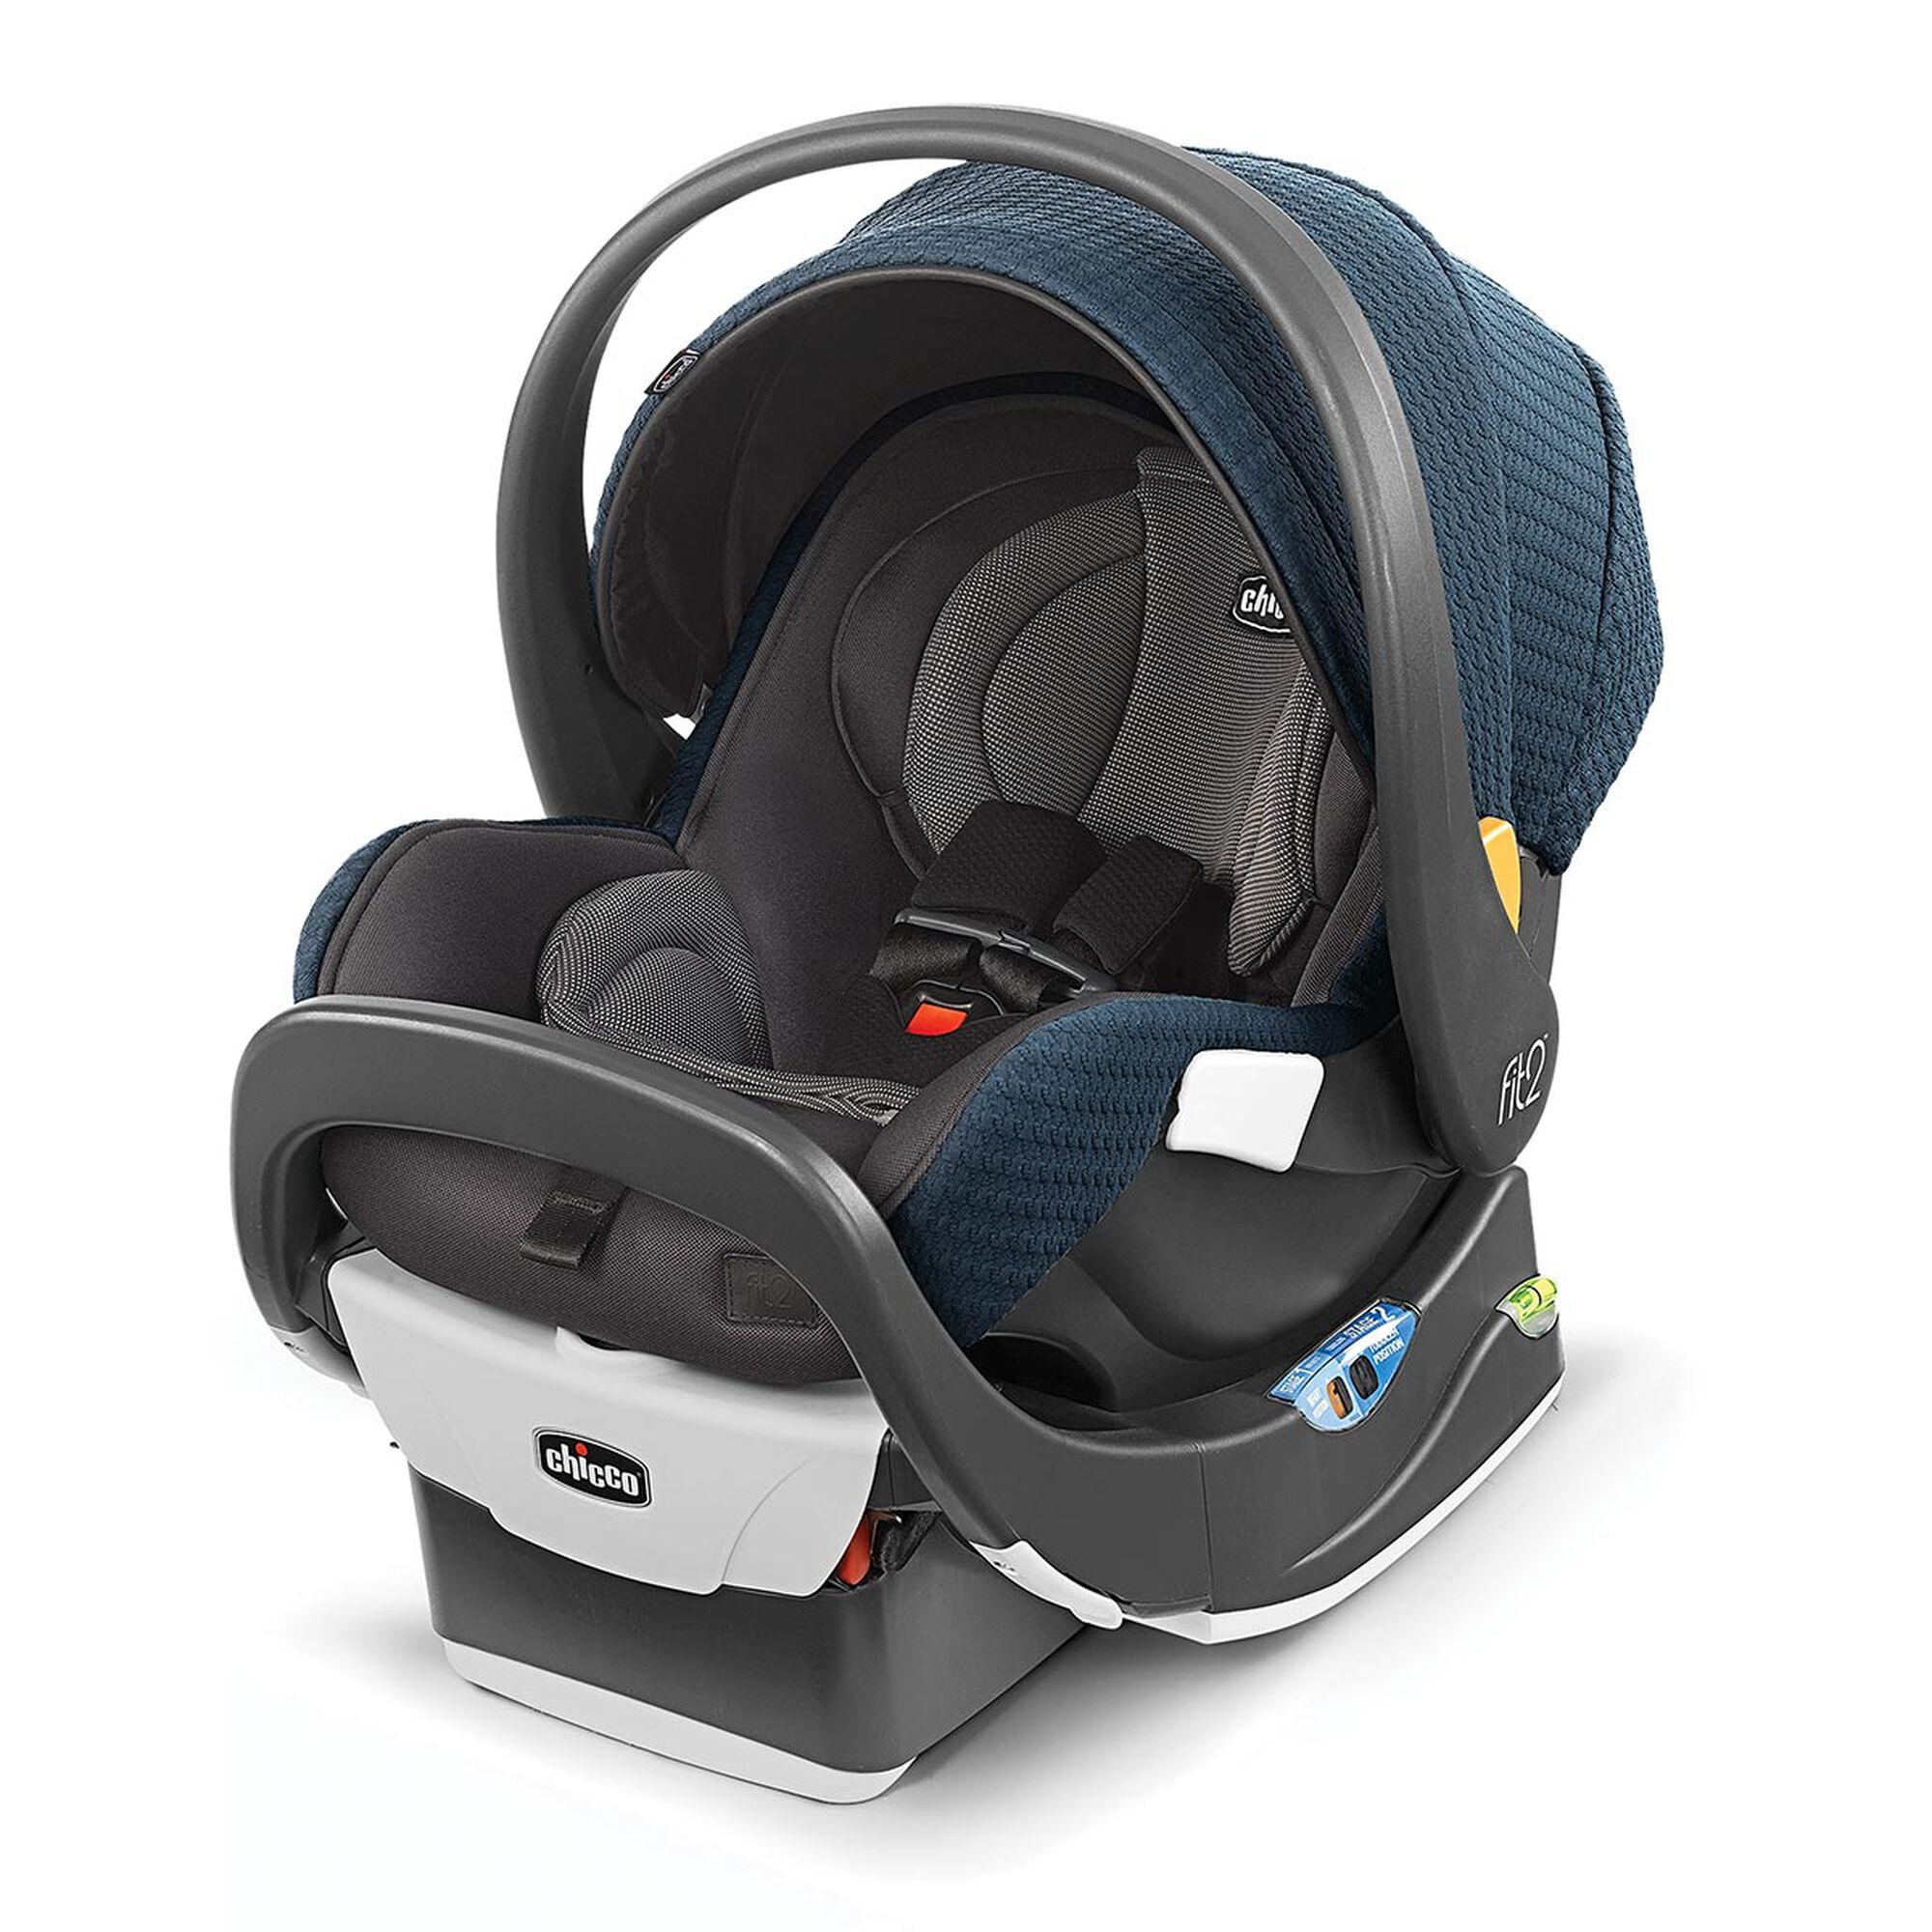 Chicco Fit2 Rear Facing Infant Amp Toddler Car Seat Amp Base